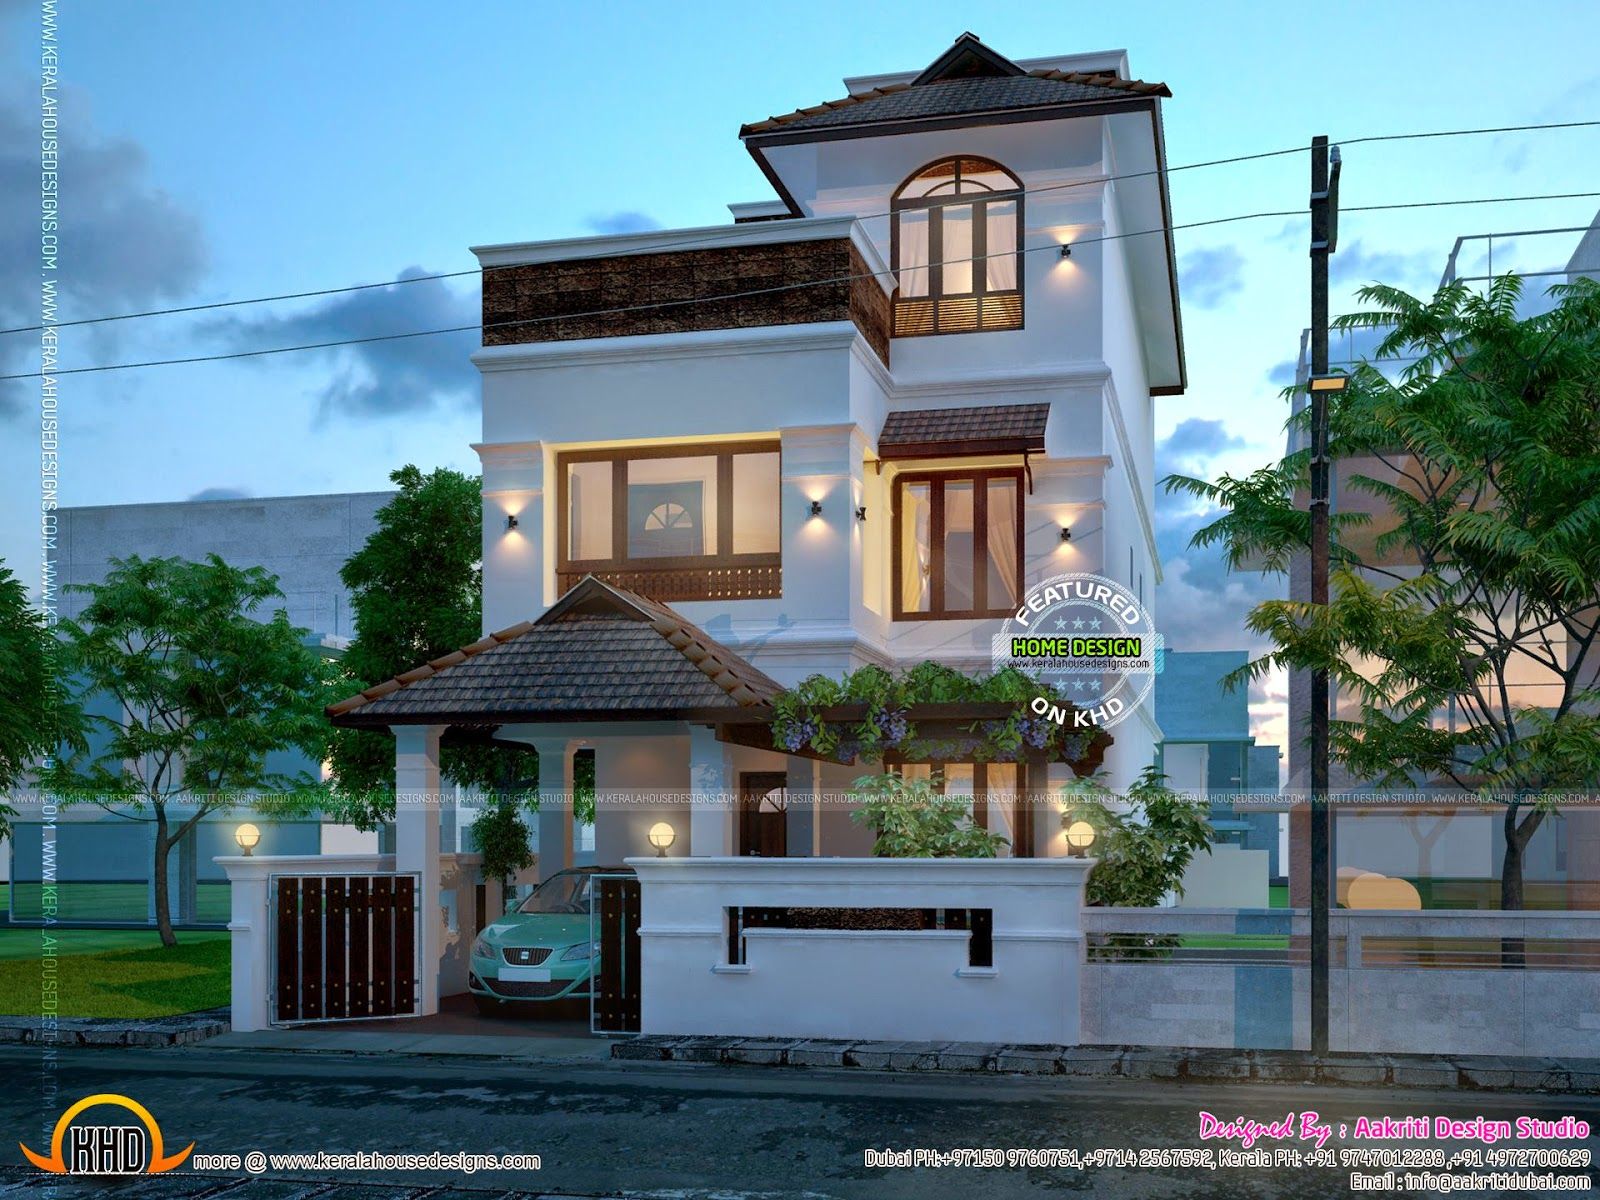 New house design kerala home design and floor plans New house design